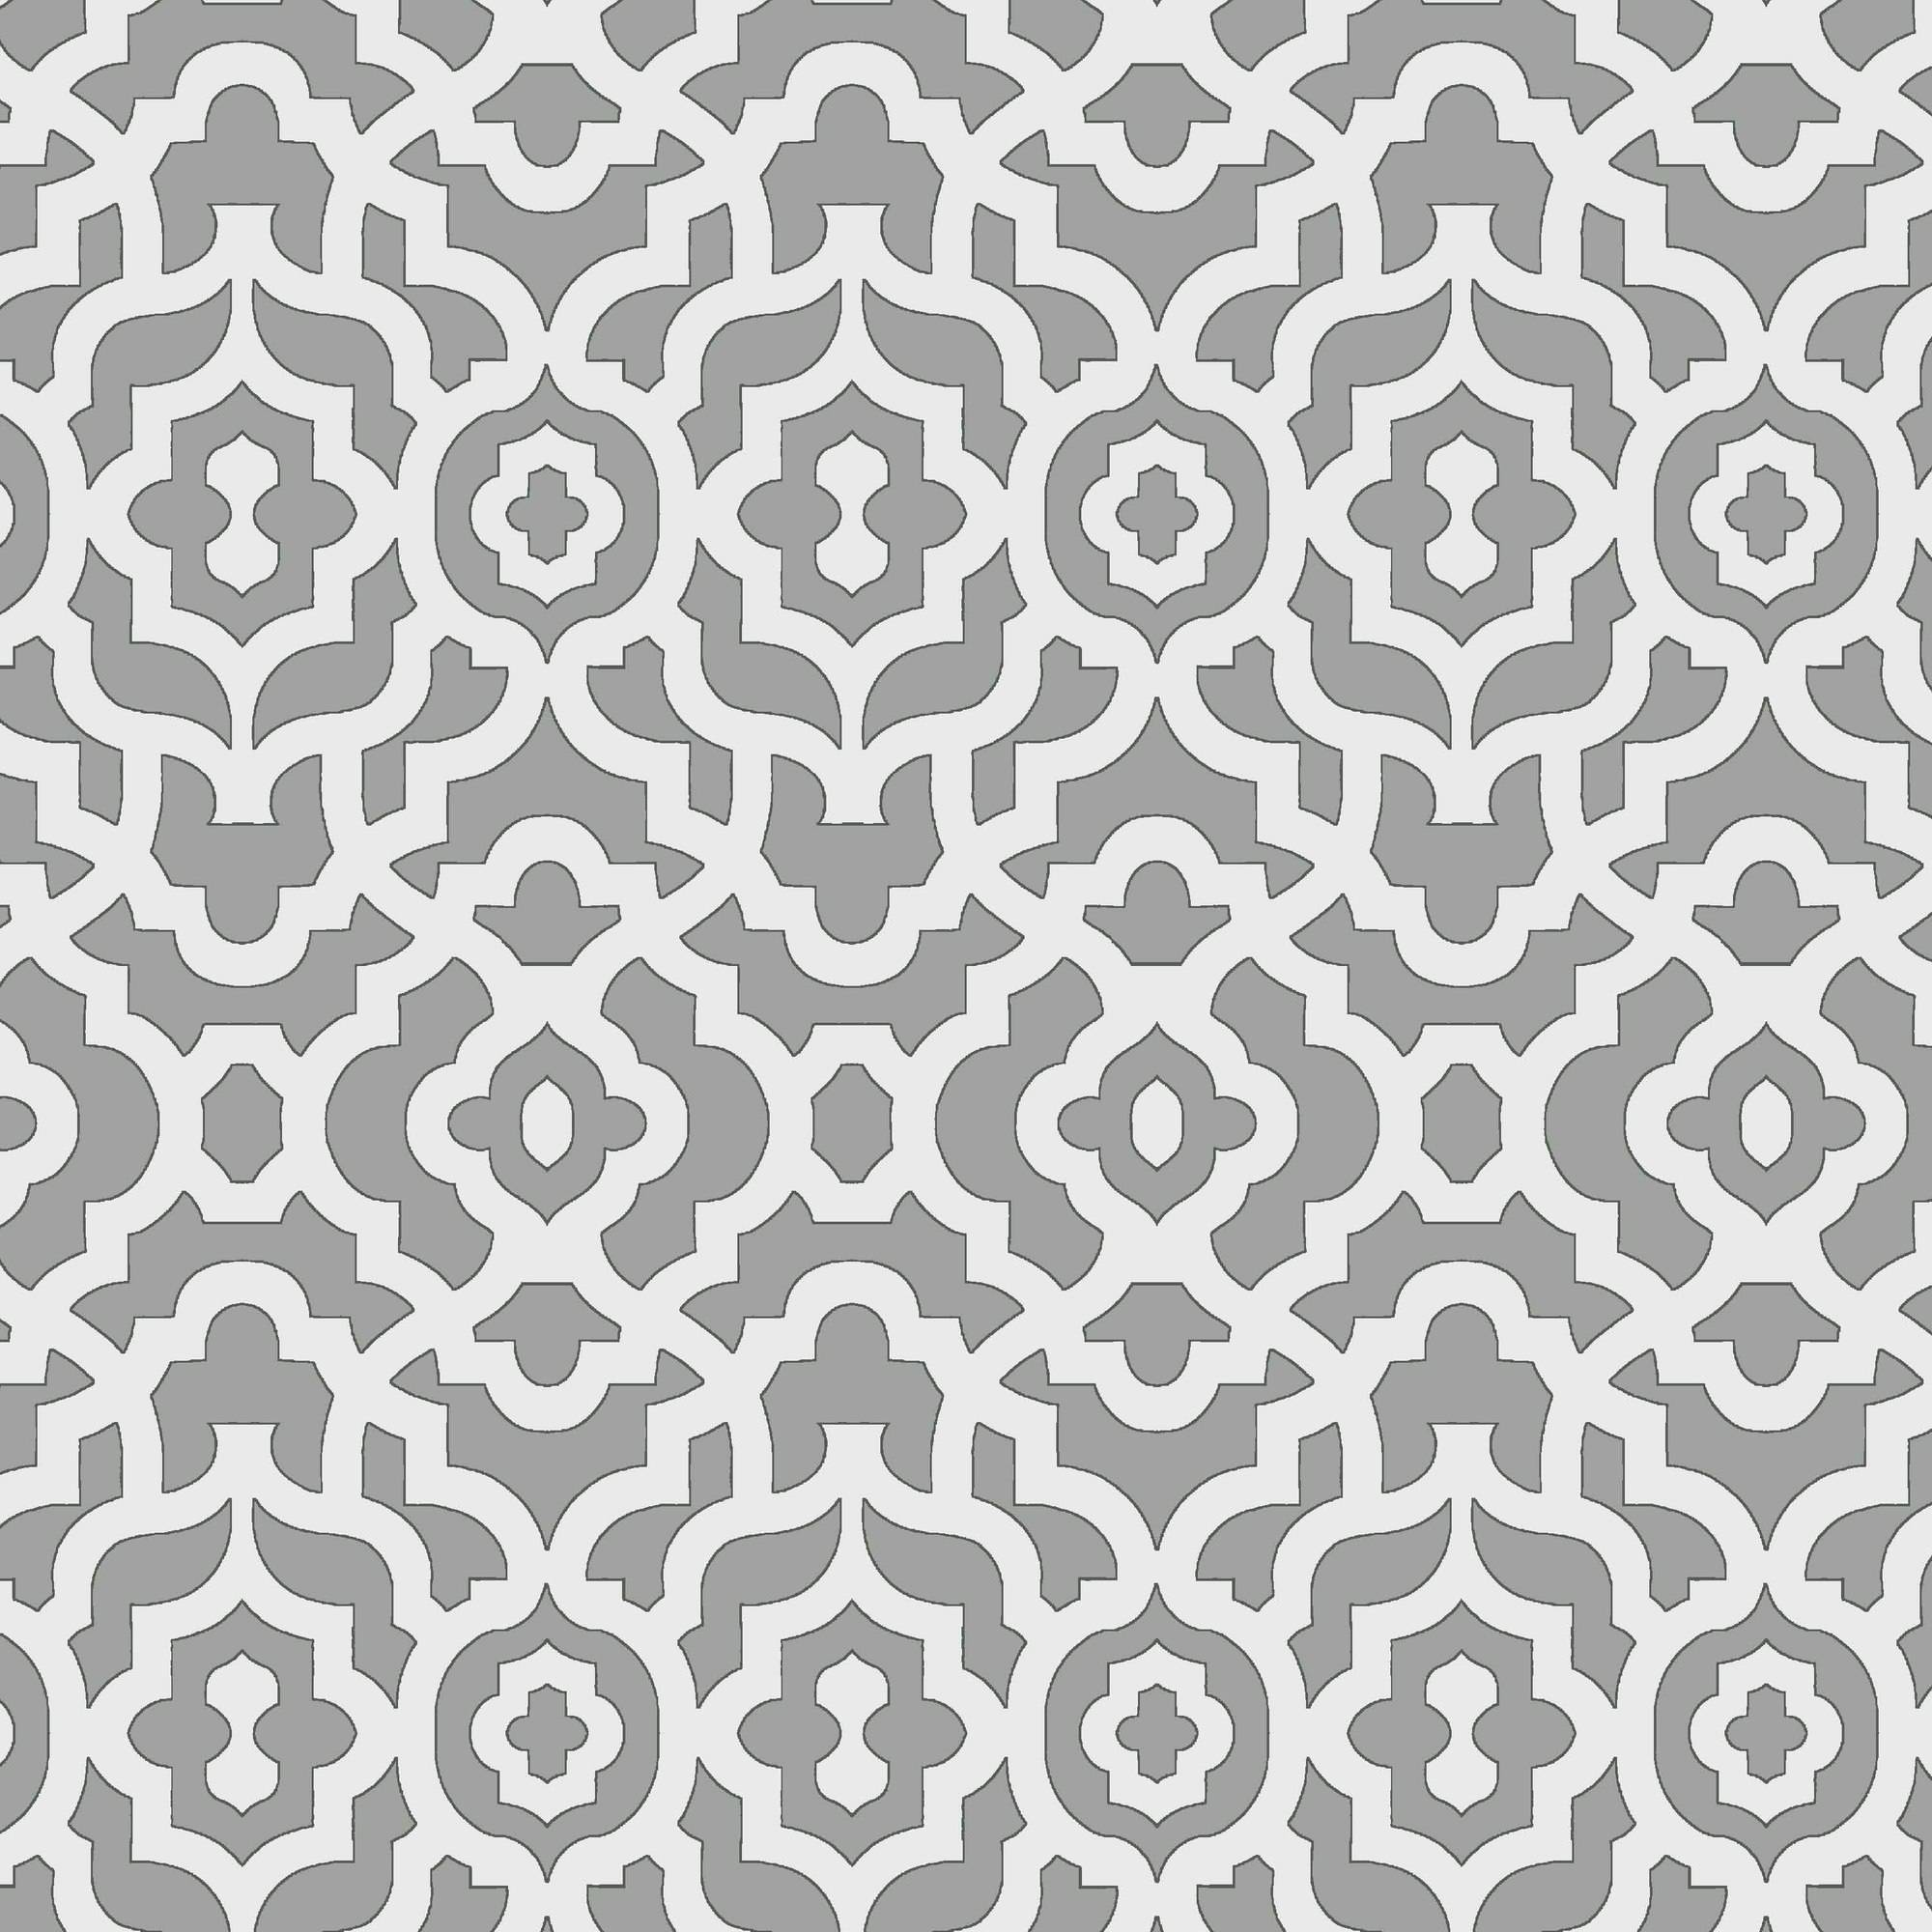 Waverly Inspirations LATTICE GREY 100% Cotton duck fabric, Quilting fabric, Home Decor ,45'', 180GSM